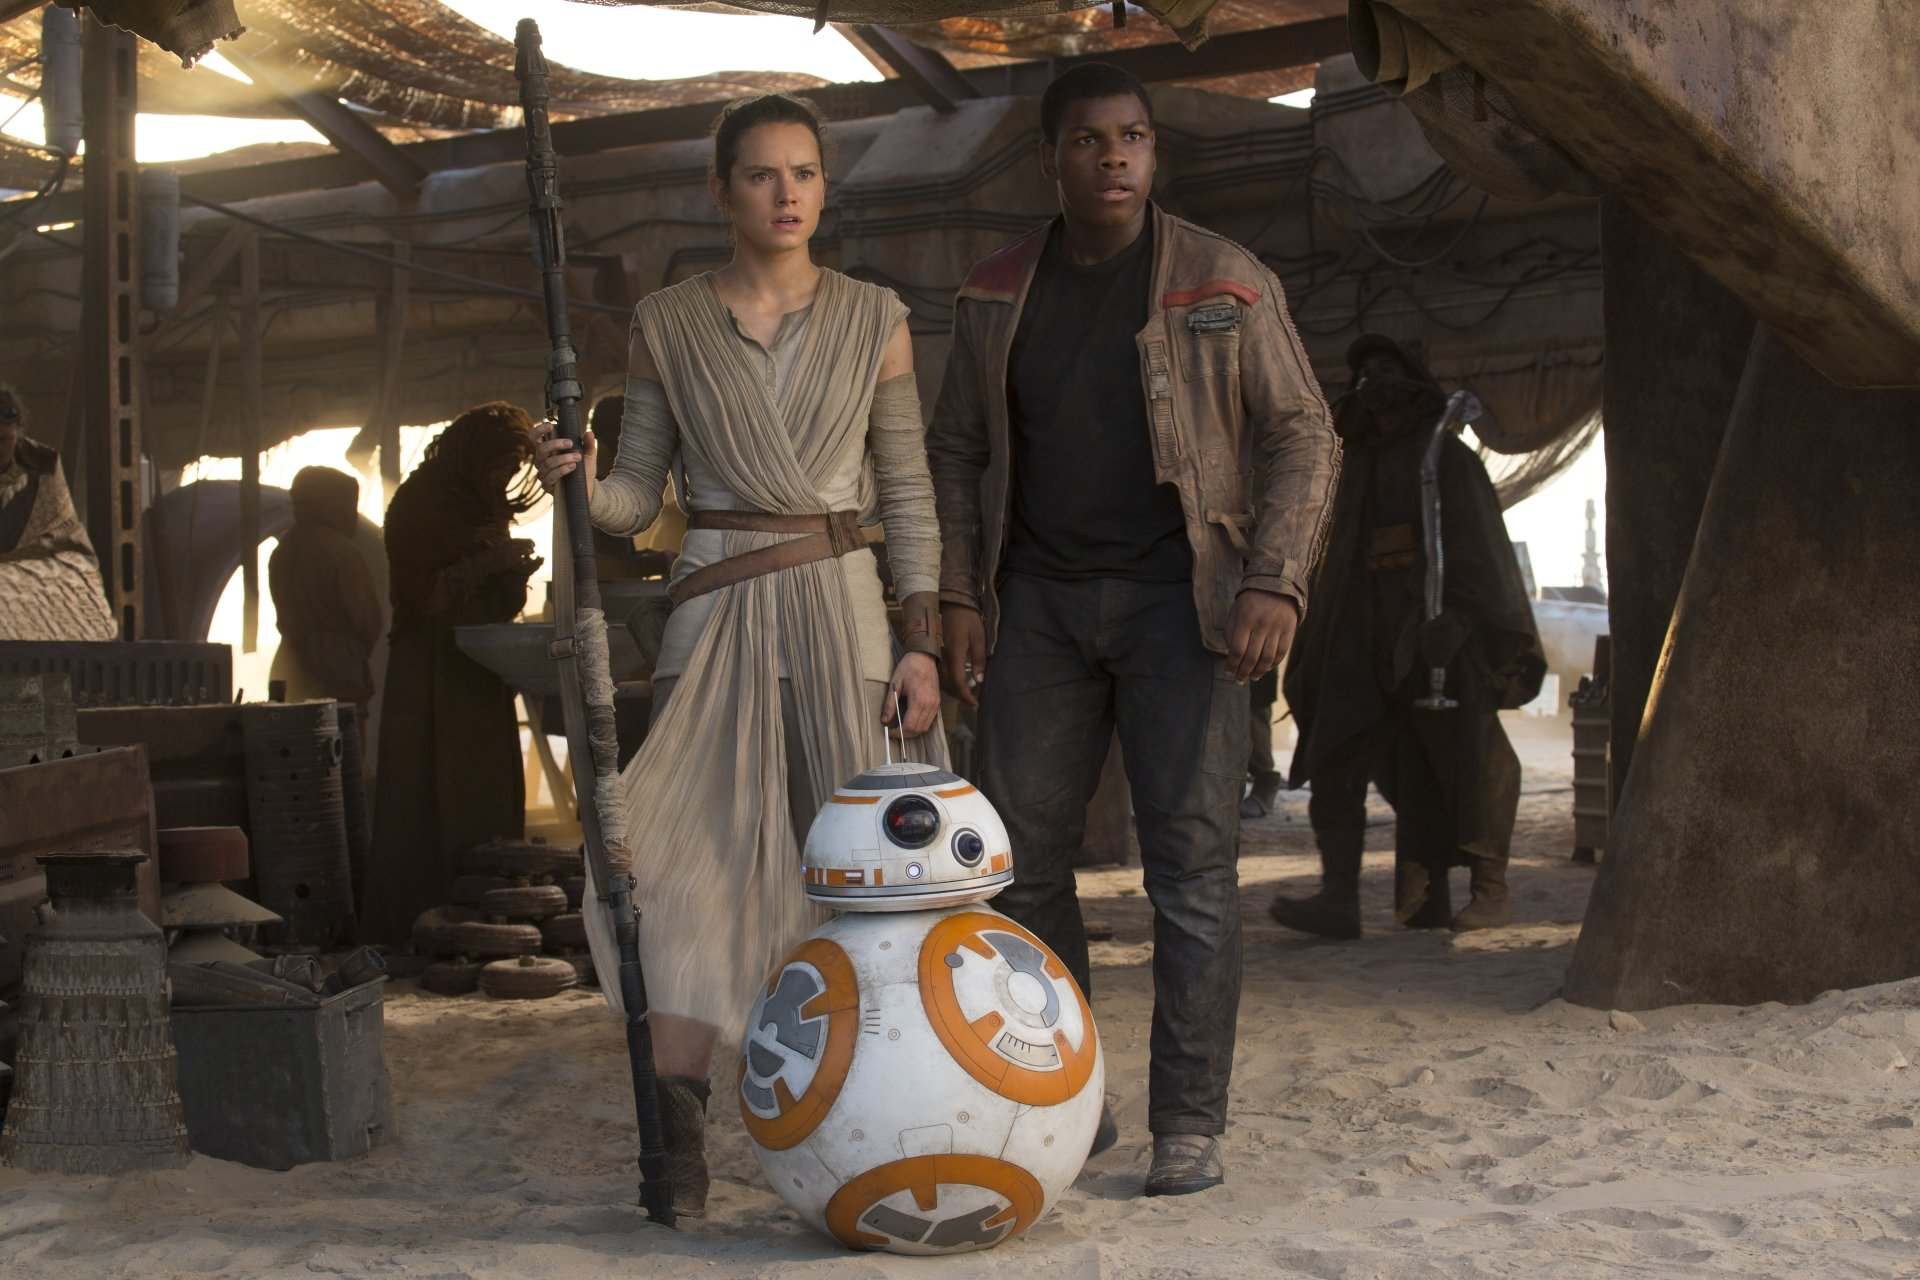 Movie - Star Wars Episode VII: The Force Awakens  Star Wars John Boyega Finn (Star Wars) Rey (Star Wars) Daisy Ridley BB-8 Wallpaper